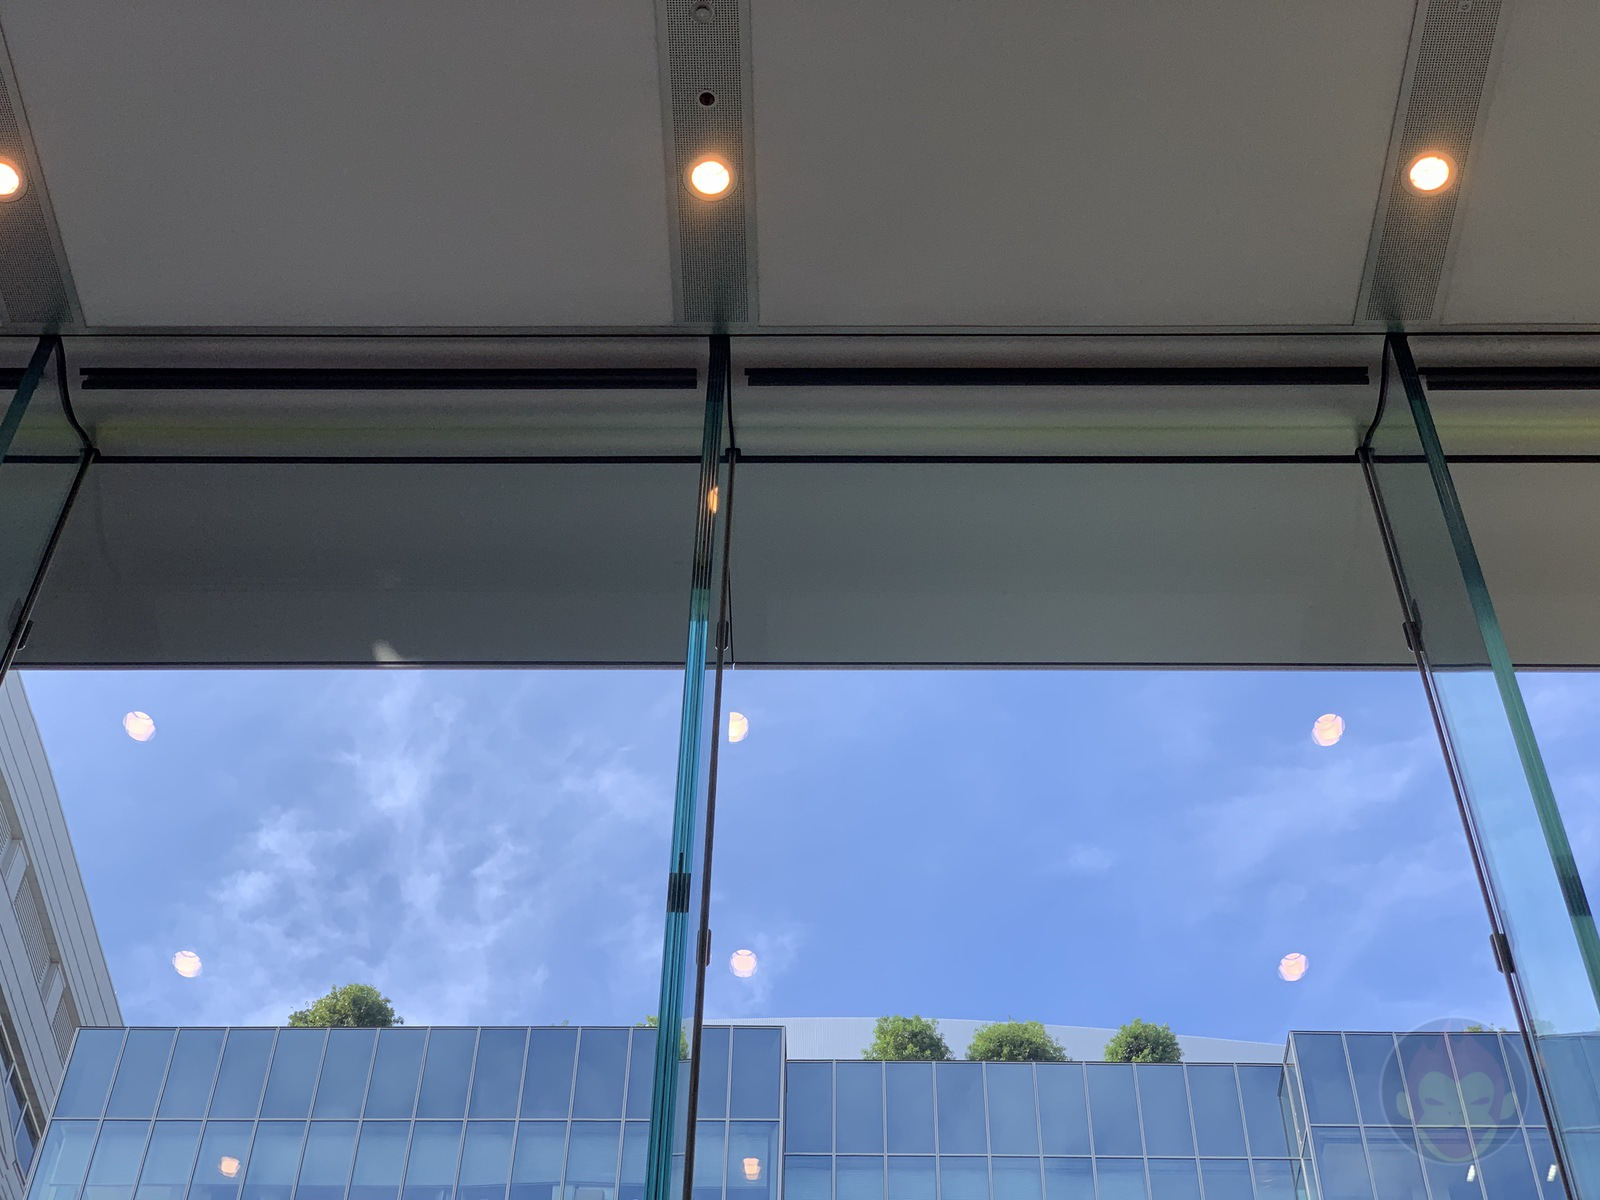 Apple-Omotesando-Video-Wall-Renewall-15.jpg